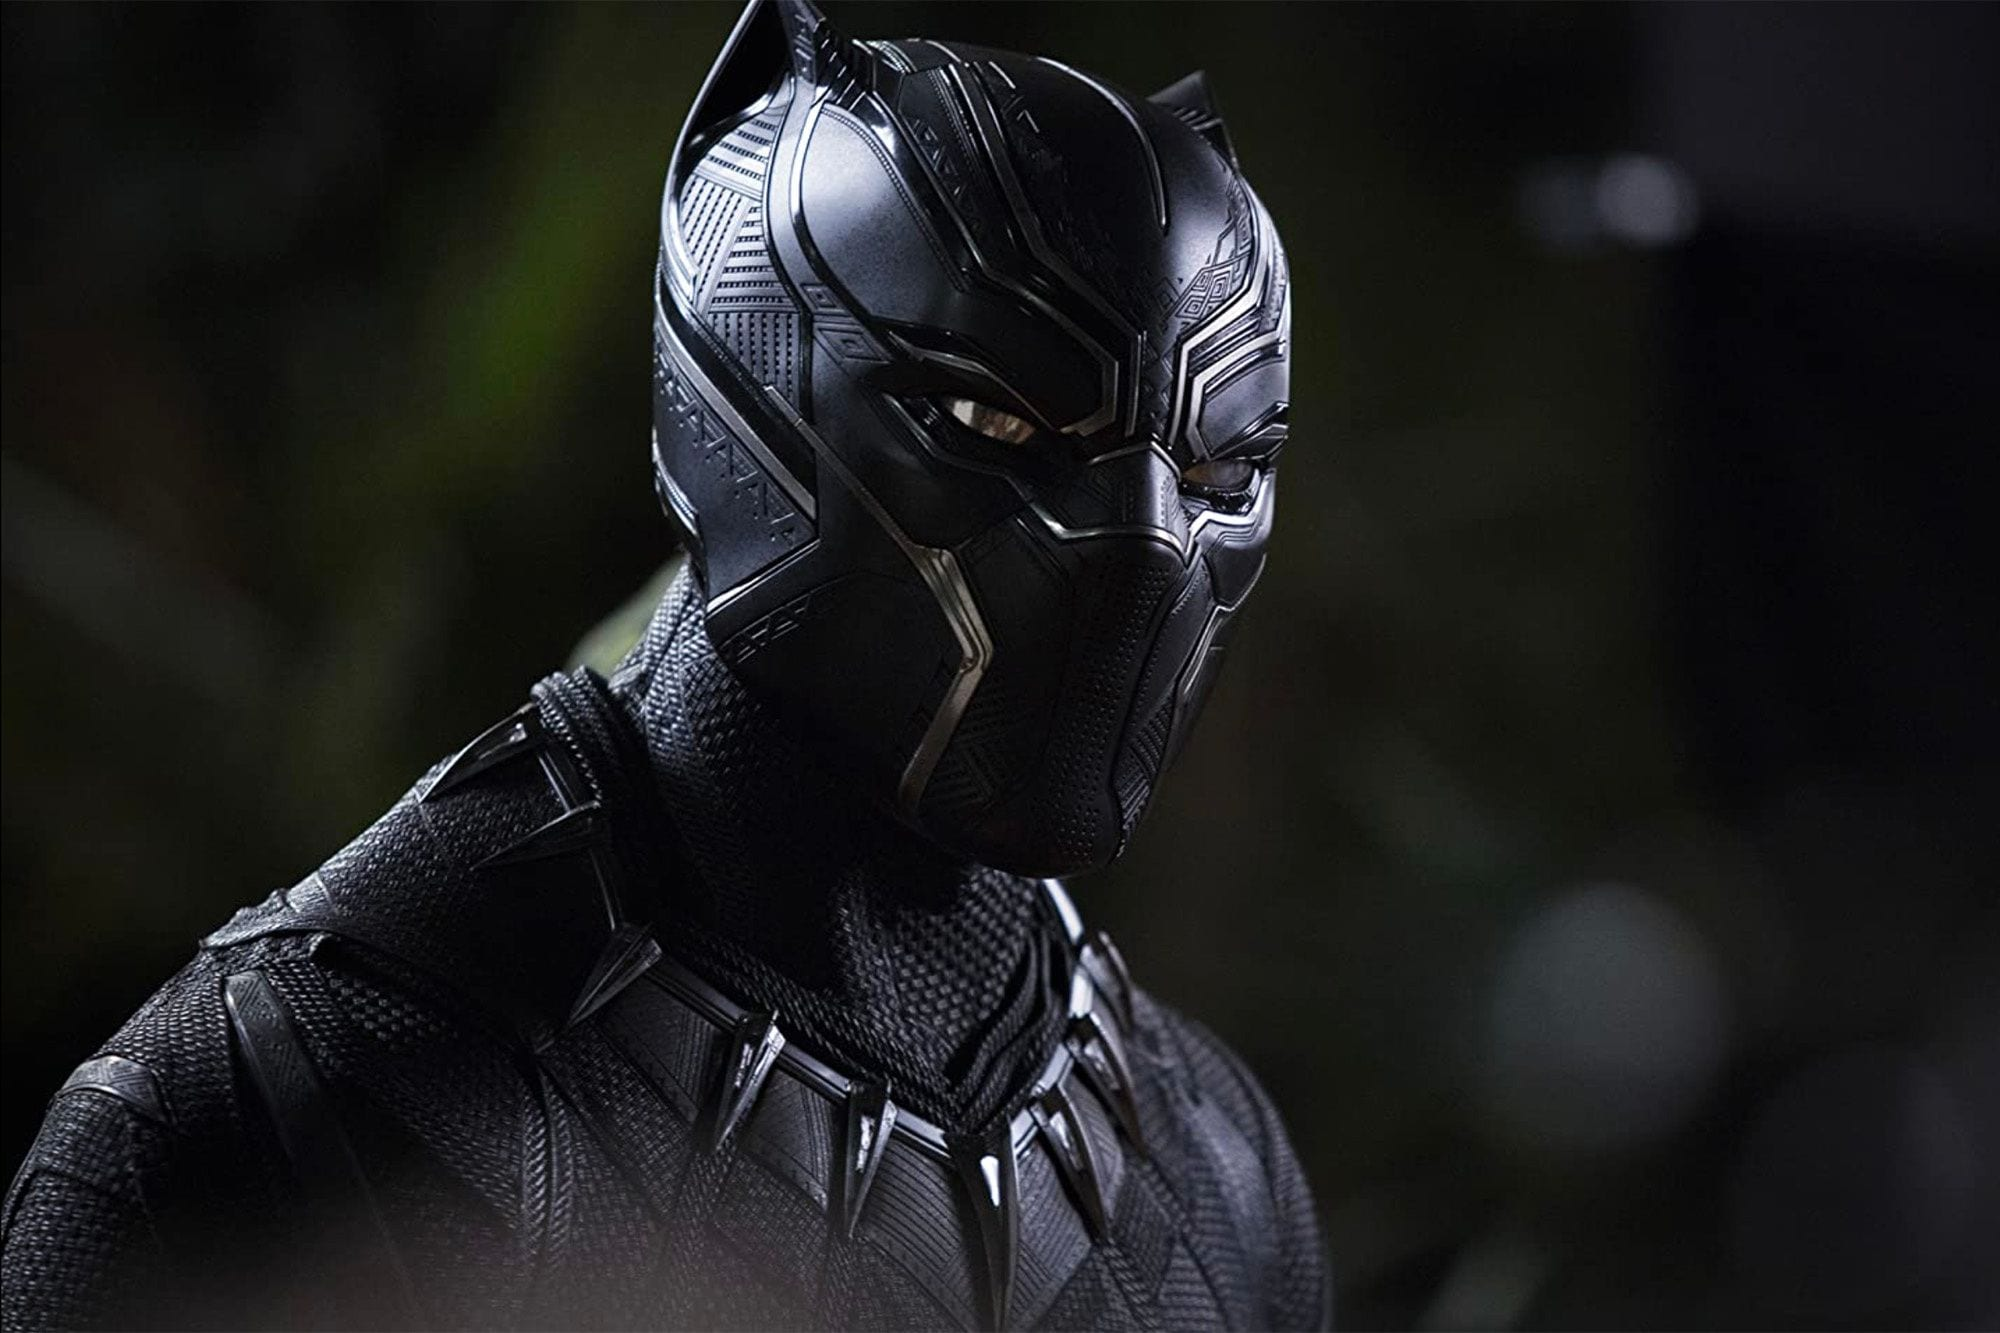 Marvel's 'Black Panther'Has Its Claws in the Zeitgeist